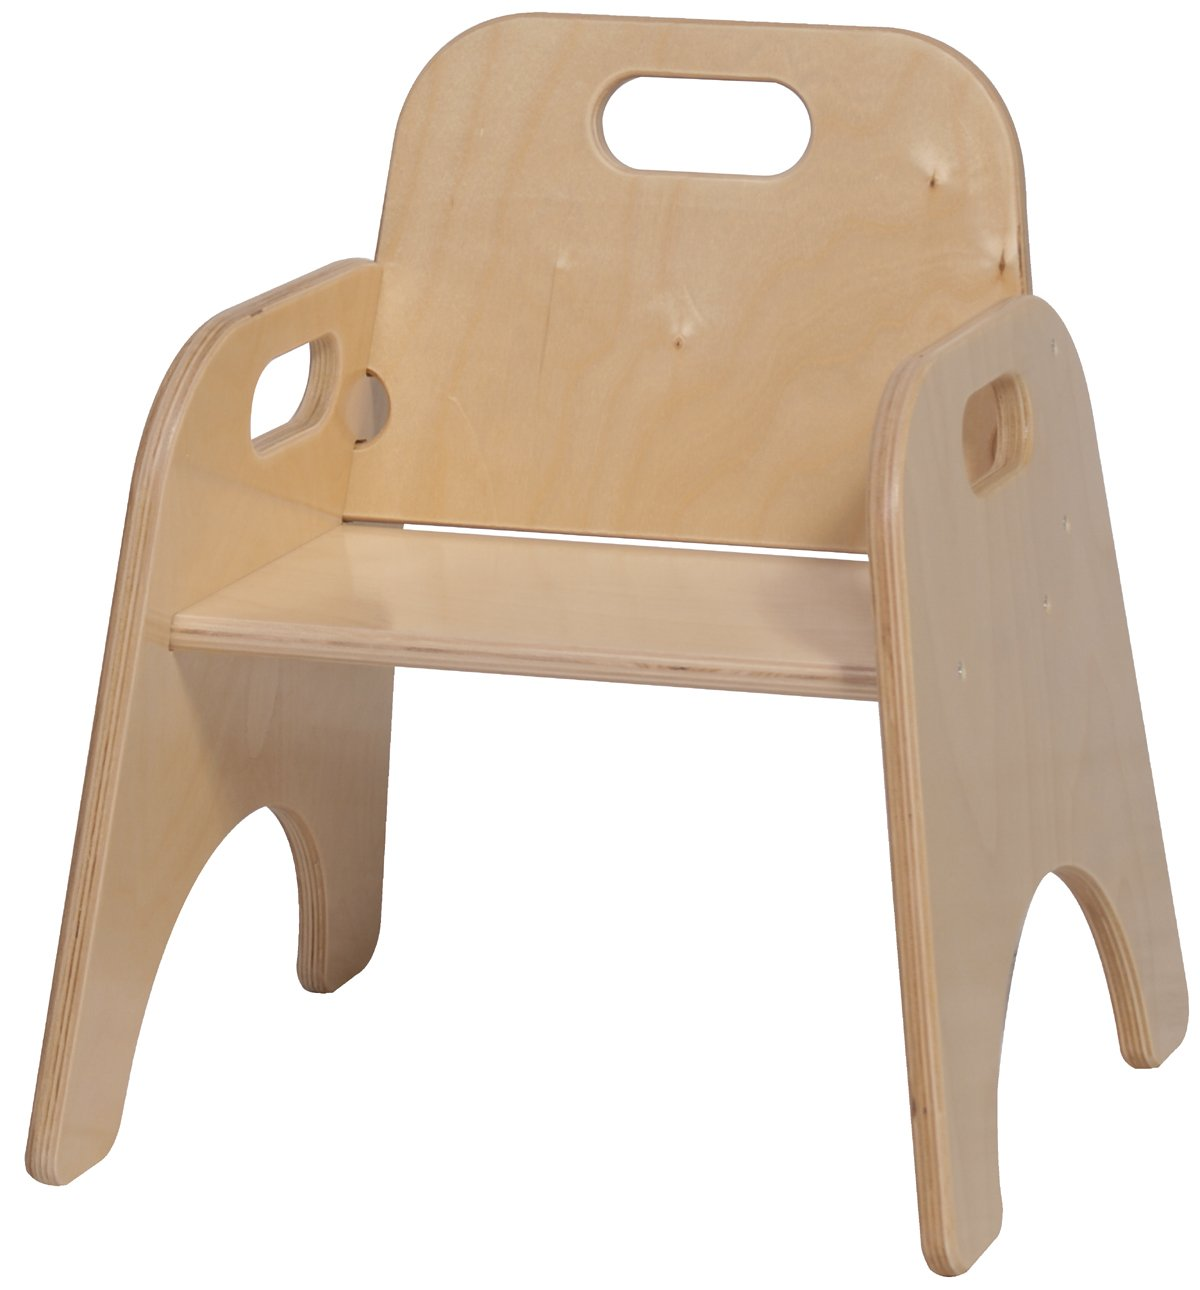 Steffy Wood Products 9-Inch Toddler Chair by Steffy Wood Products, Inc.